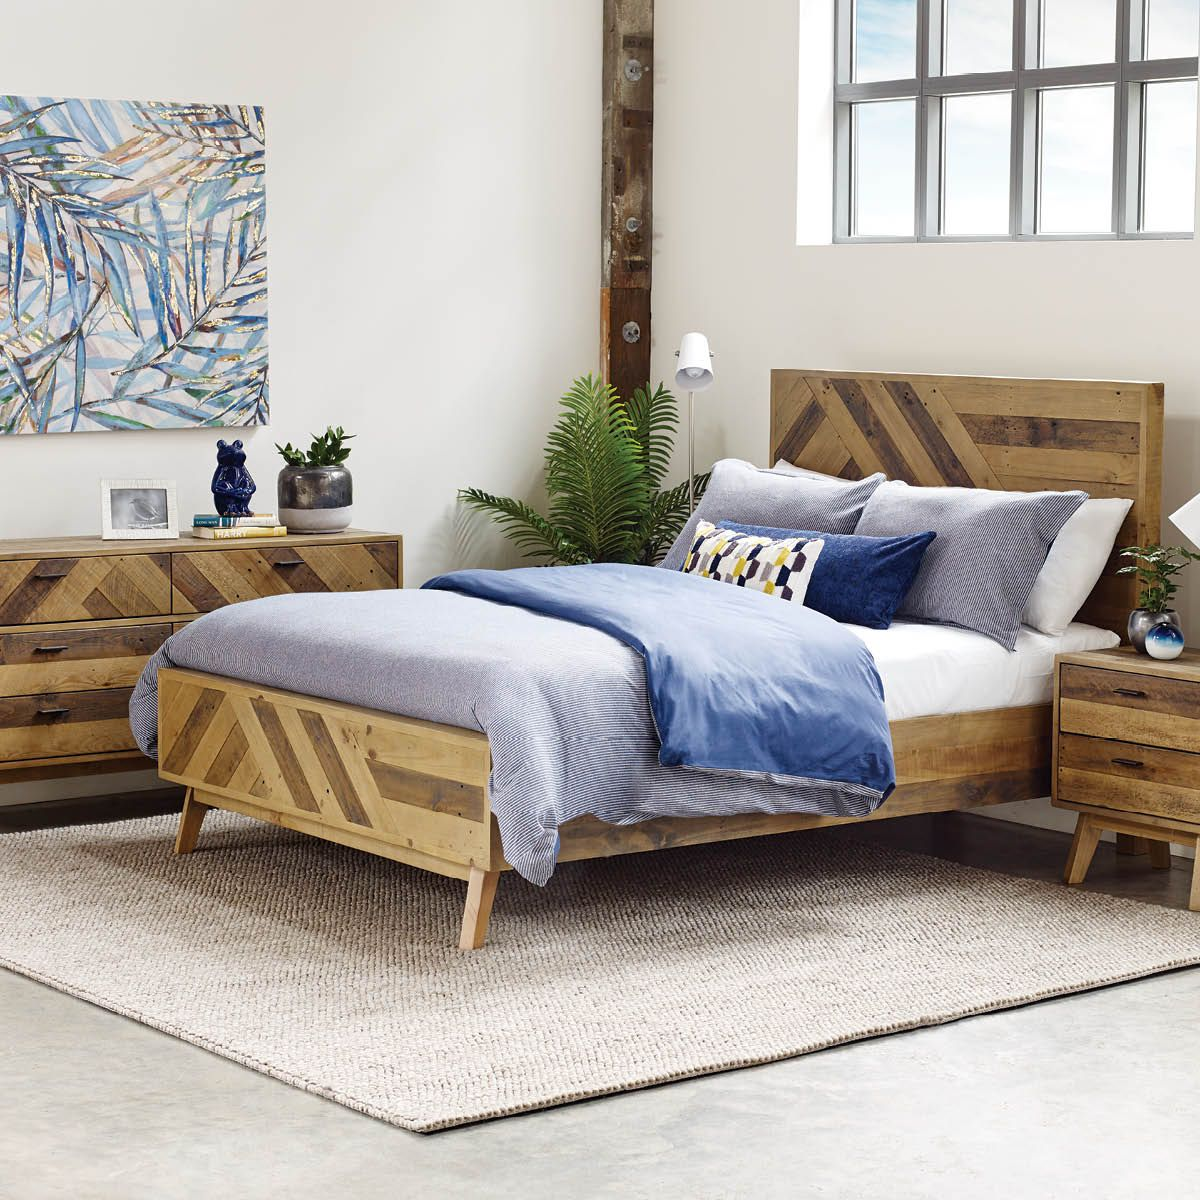 Sawyer Bed Thompson Pine Crafted From Reclaimed Pine The Sawyer Bedroom Collection Balances Mid Century Styling With A Natura Bedroom Furniture Furniture Bed